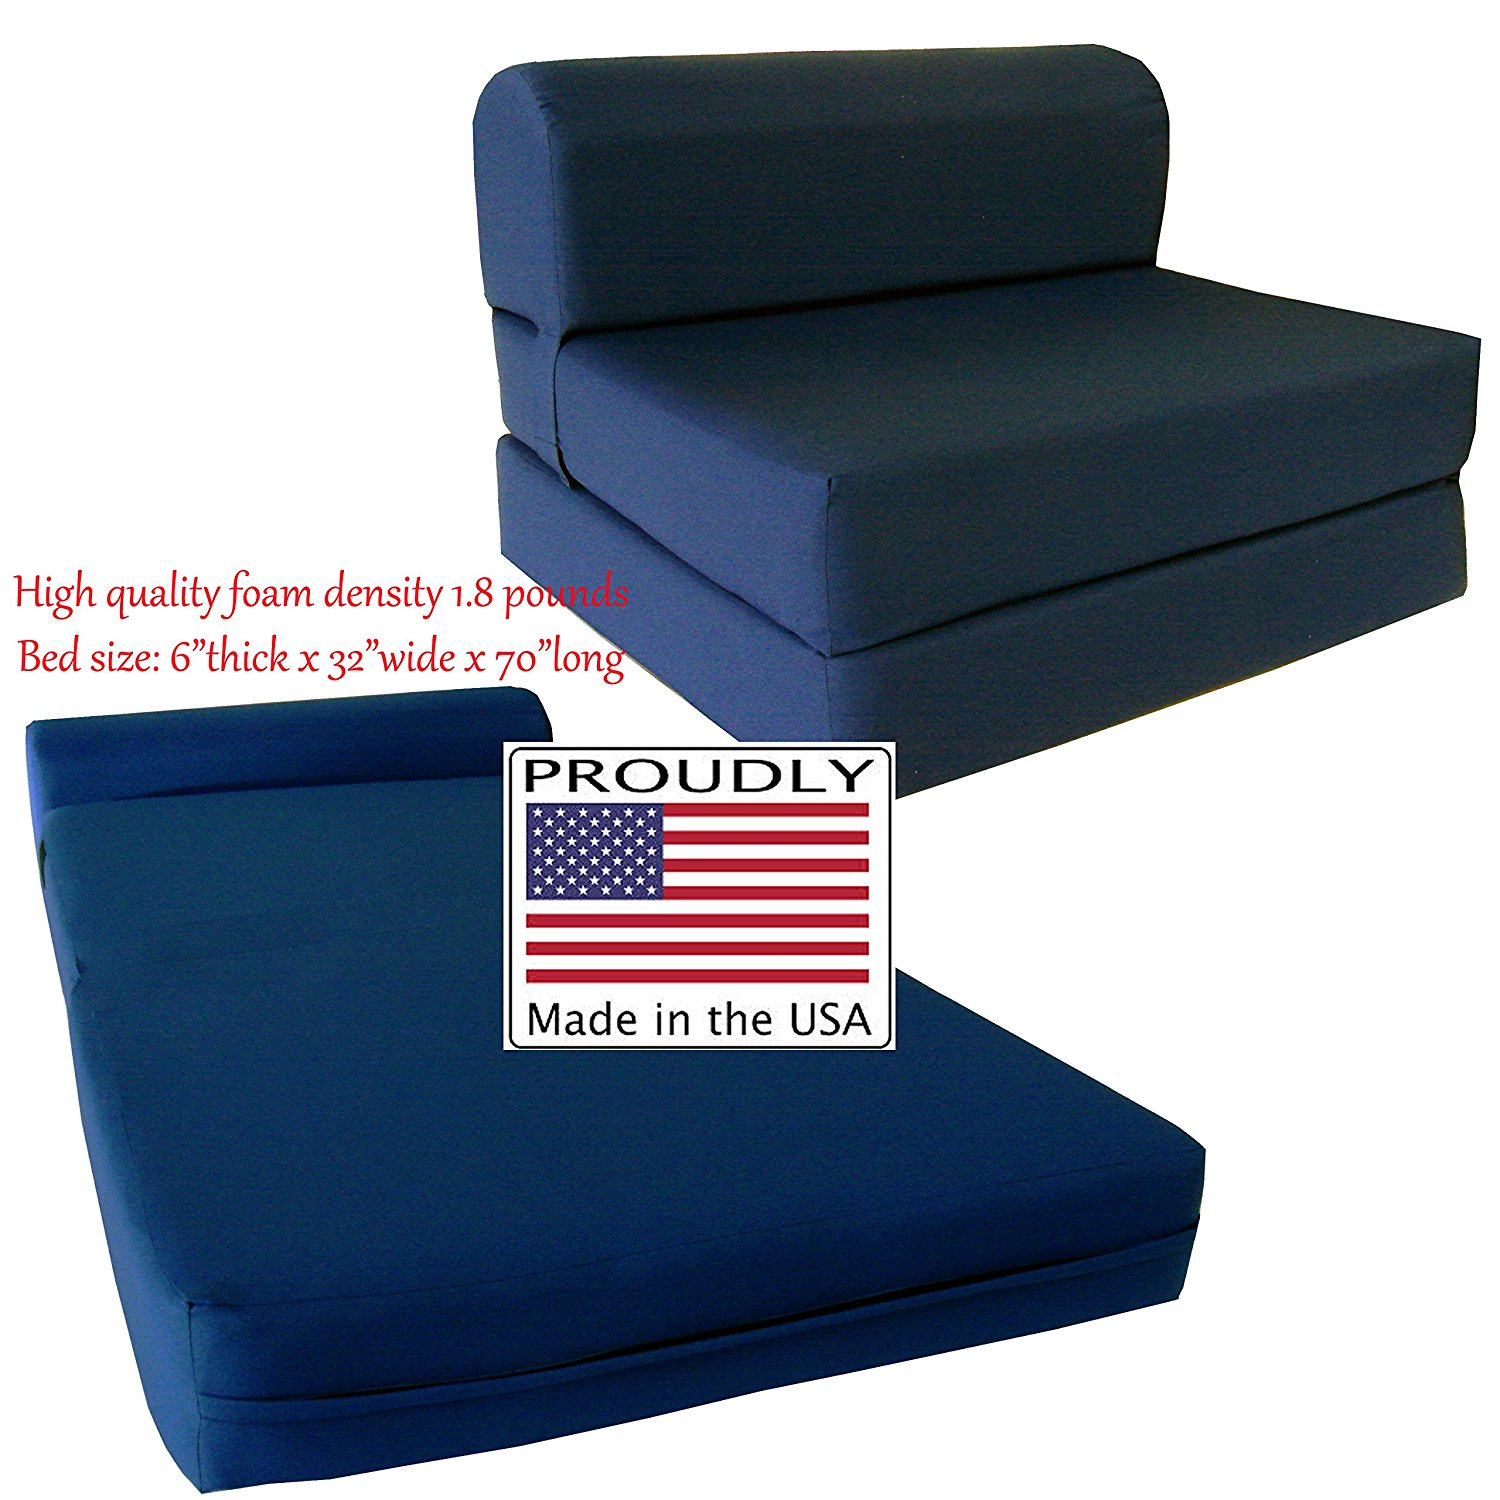 "Navy Sleeper Chair Folding Foam Bed Sized 6"" Thick X 32"" Wide X 70"" Long, Studio Guest Foldable Chair Beds, Foam Sofa, Couch, High Density Foam 1.8 Pounds."